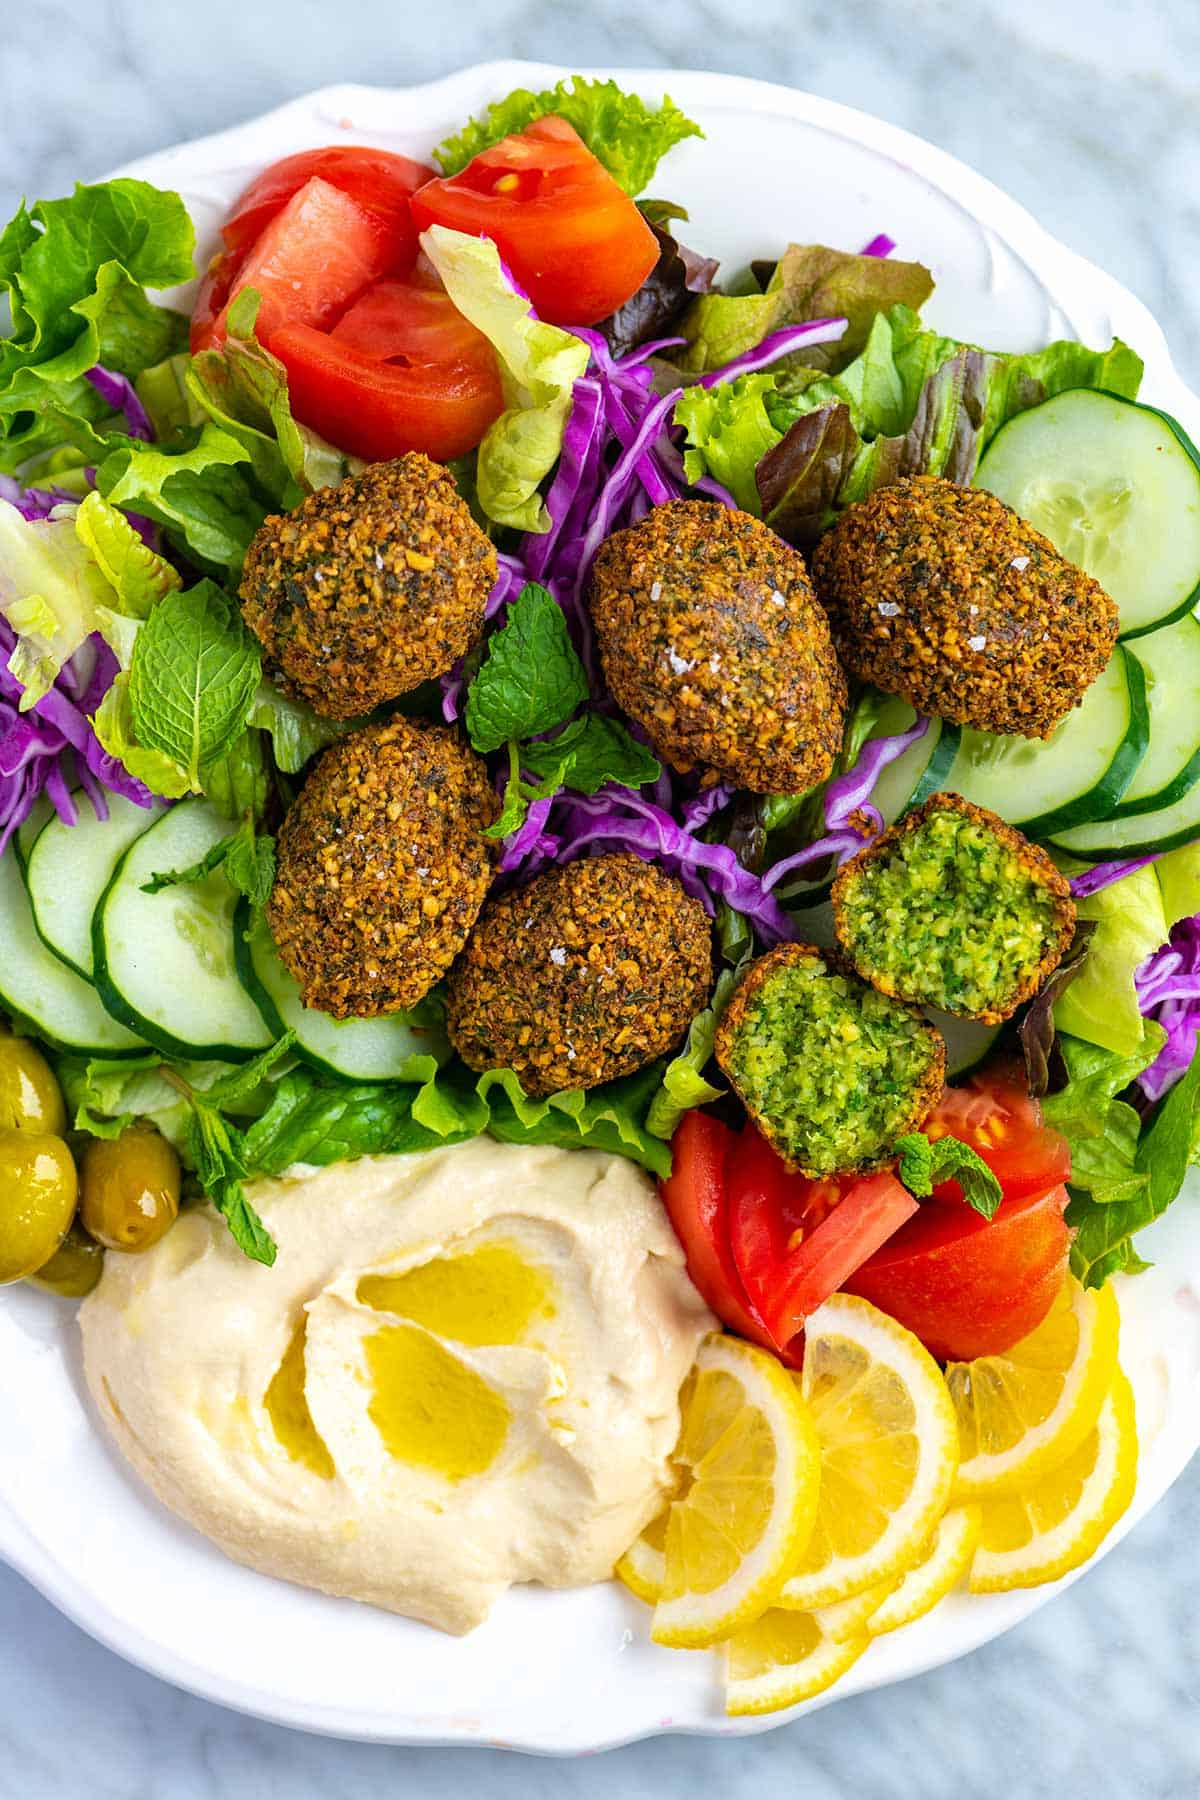 How to make delicious and crispy falafel at home rivaling your favorite restaurants. After lots of kitchen tests, this falafel recipe has become our favorite way to make falafel. The recipe is straightforward, 100% plant-based (vegan), and the falafel taste incredible.